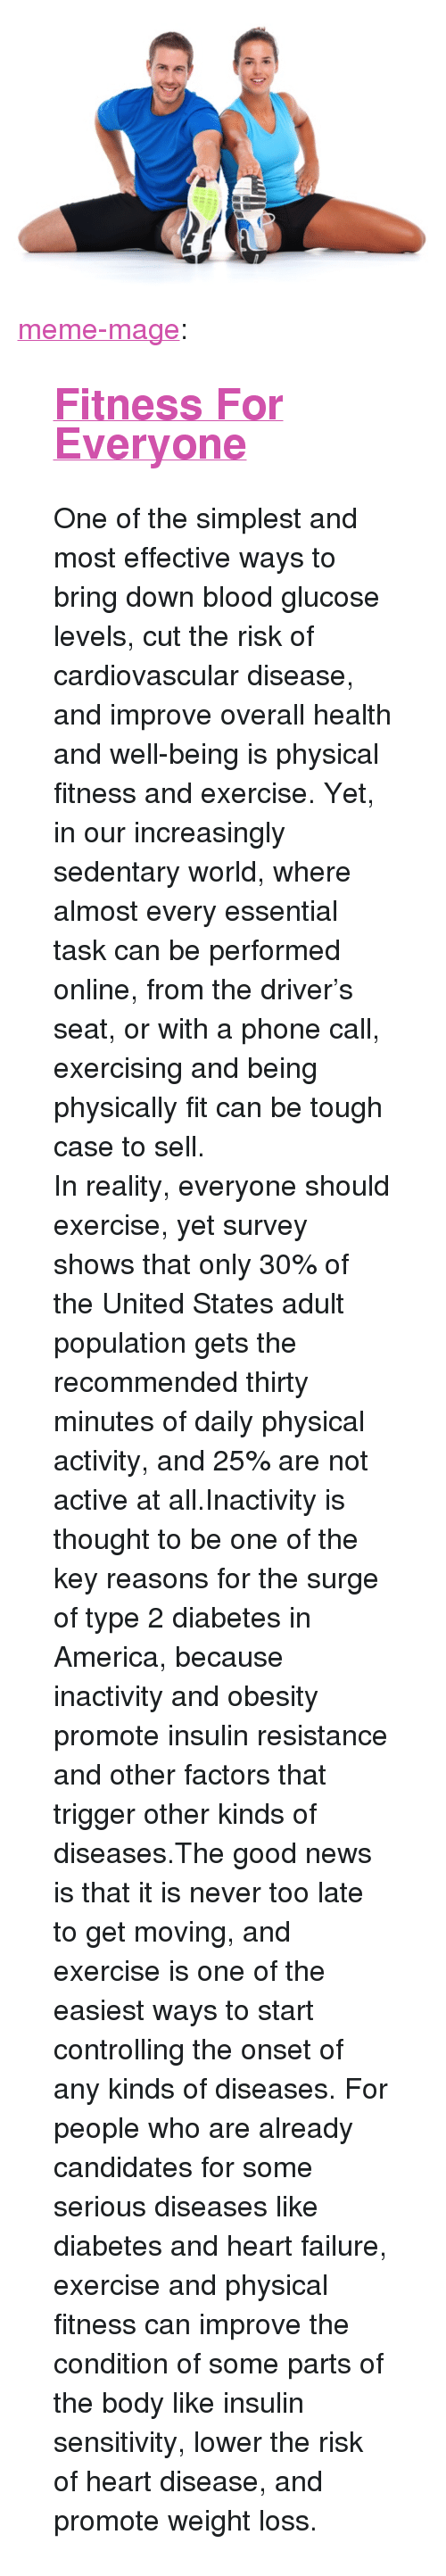 """physical activity: <p><a class=""""tumblr_blog"""" href=""""http://meme-mage.tumblr.com/post/138876070148"""">meme-mage</a>:</p> <blockquote> <h2><a href=""""http://www.dailyfitnesspro.com/"""">Fitness For Everyone</a></h2> <p>One of the simplest and most effective ways to bring down blood glucose levels, cut the risk of cardiovascular disease, and improve overall health and well-being is physical fitness and exercise. Yet, in our increasingly sedentary world, where almost every essential task can be performed online, from the driver's seat, or with a phone call, exercising and being physically fit can be tough case to sell.</p> <p>In reality, everyone should exercise, yet survey shows that only 30% of the United States adult population gets the recommended thirty minutes of daily physical activity, and 25% are not active at all.Inactivity is thought to be one of the key reasons for the surge of type 2 diabetes in America, because inactivity and obesity promote insulin resistance and other factors that trigger other kinds of diseases.The good news is that it is never too late to get moving, and exercise is one of the easiest ways to start controlling the onset of any kinds of diseases. For people who are already candidates for some serious diseases like diabetes and heart failure, exercise and physical fitness can improve the condition of some parts of the body like insulin sensitivity, lower the risk of heart disease, and promote weight loss.</p> </blockquote>"""